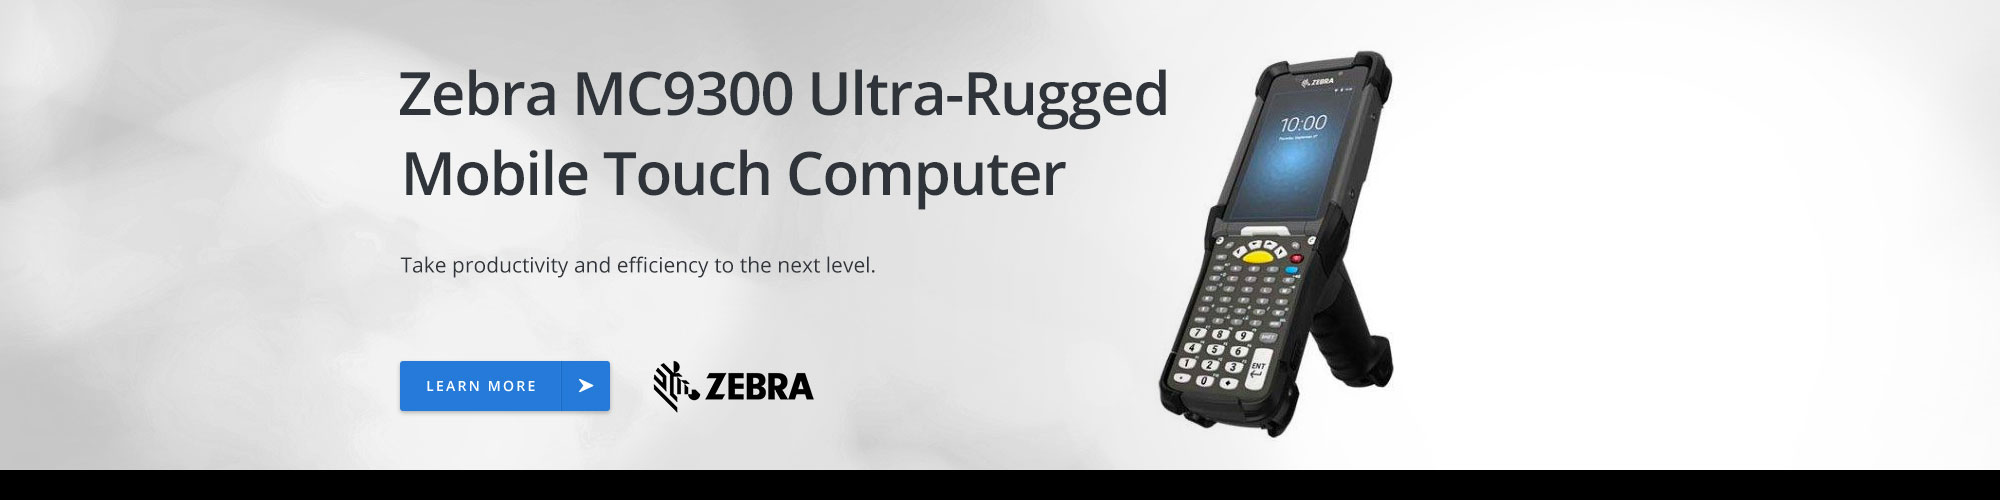 Zebra MC9300 Ultra-Rugged Mobile Touch Computer